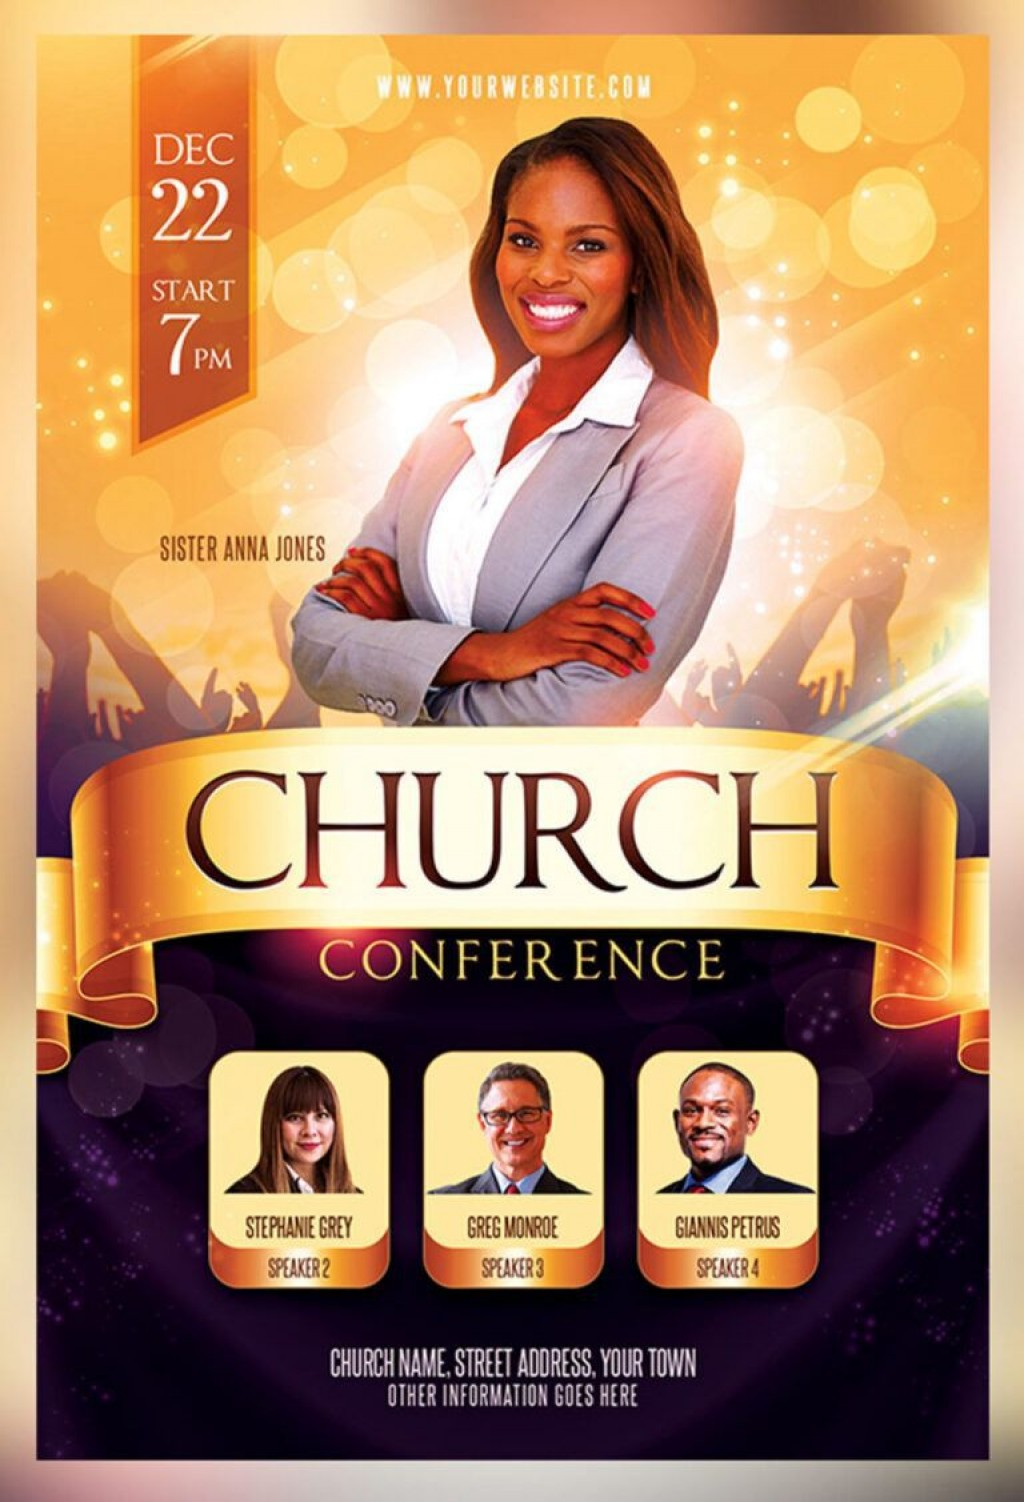 007 Shocking Church Flyer Template Free High Def  Easter Anniversary Conference PsdLarge